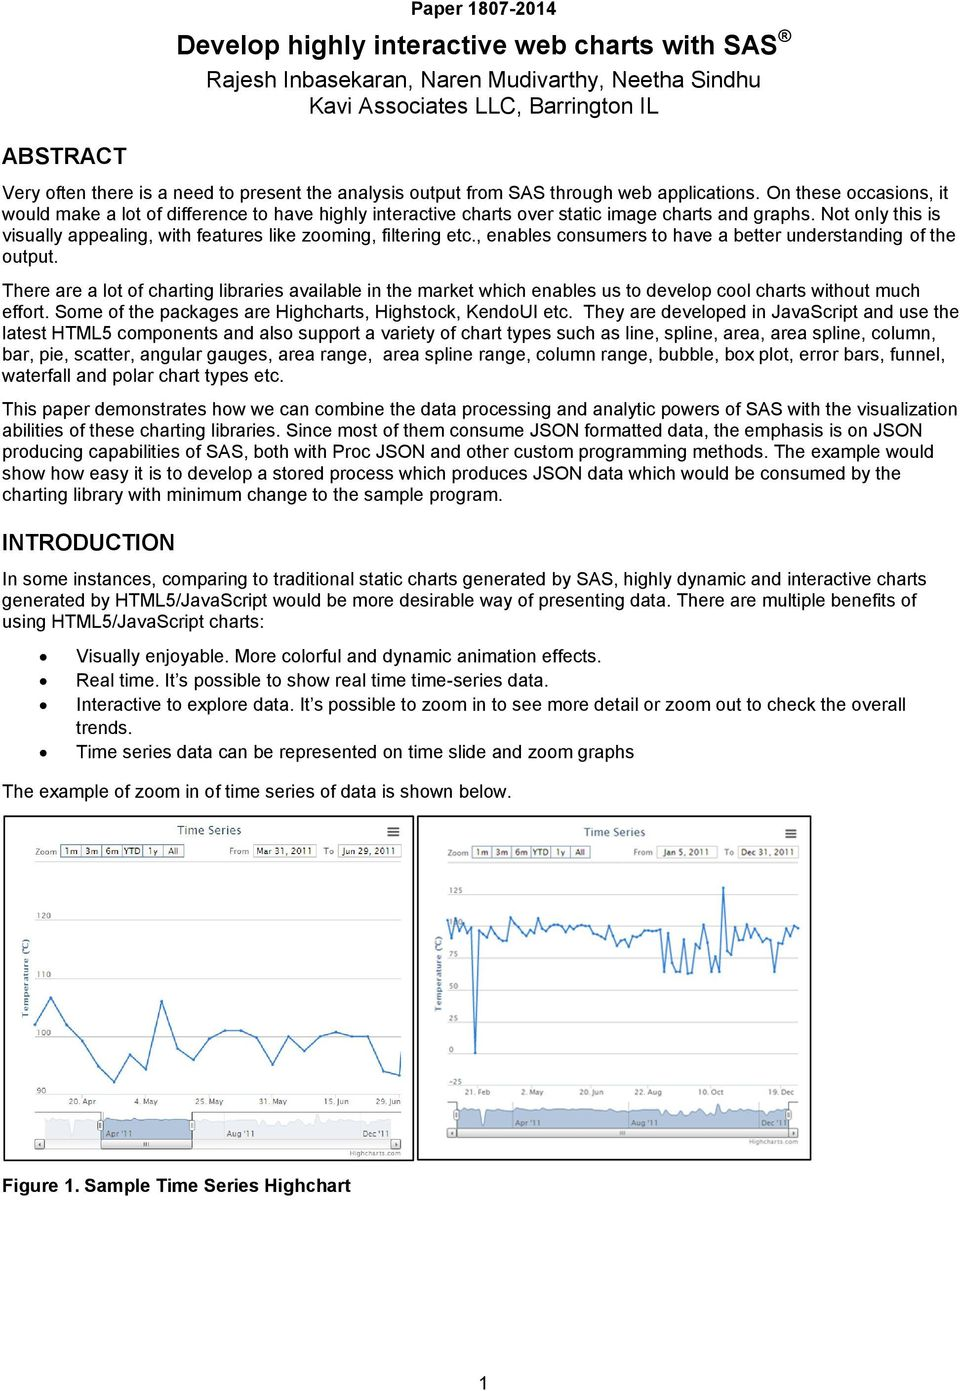 Develop highly interactive web charts with SAS - PDF